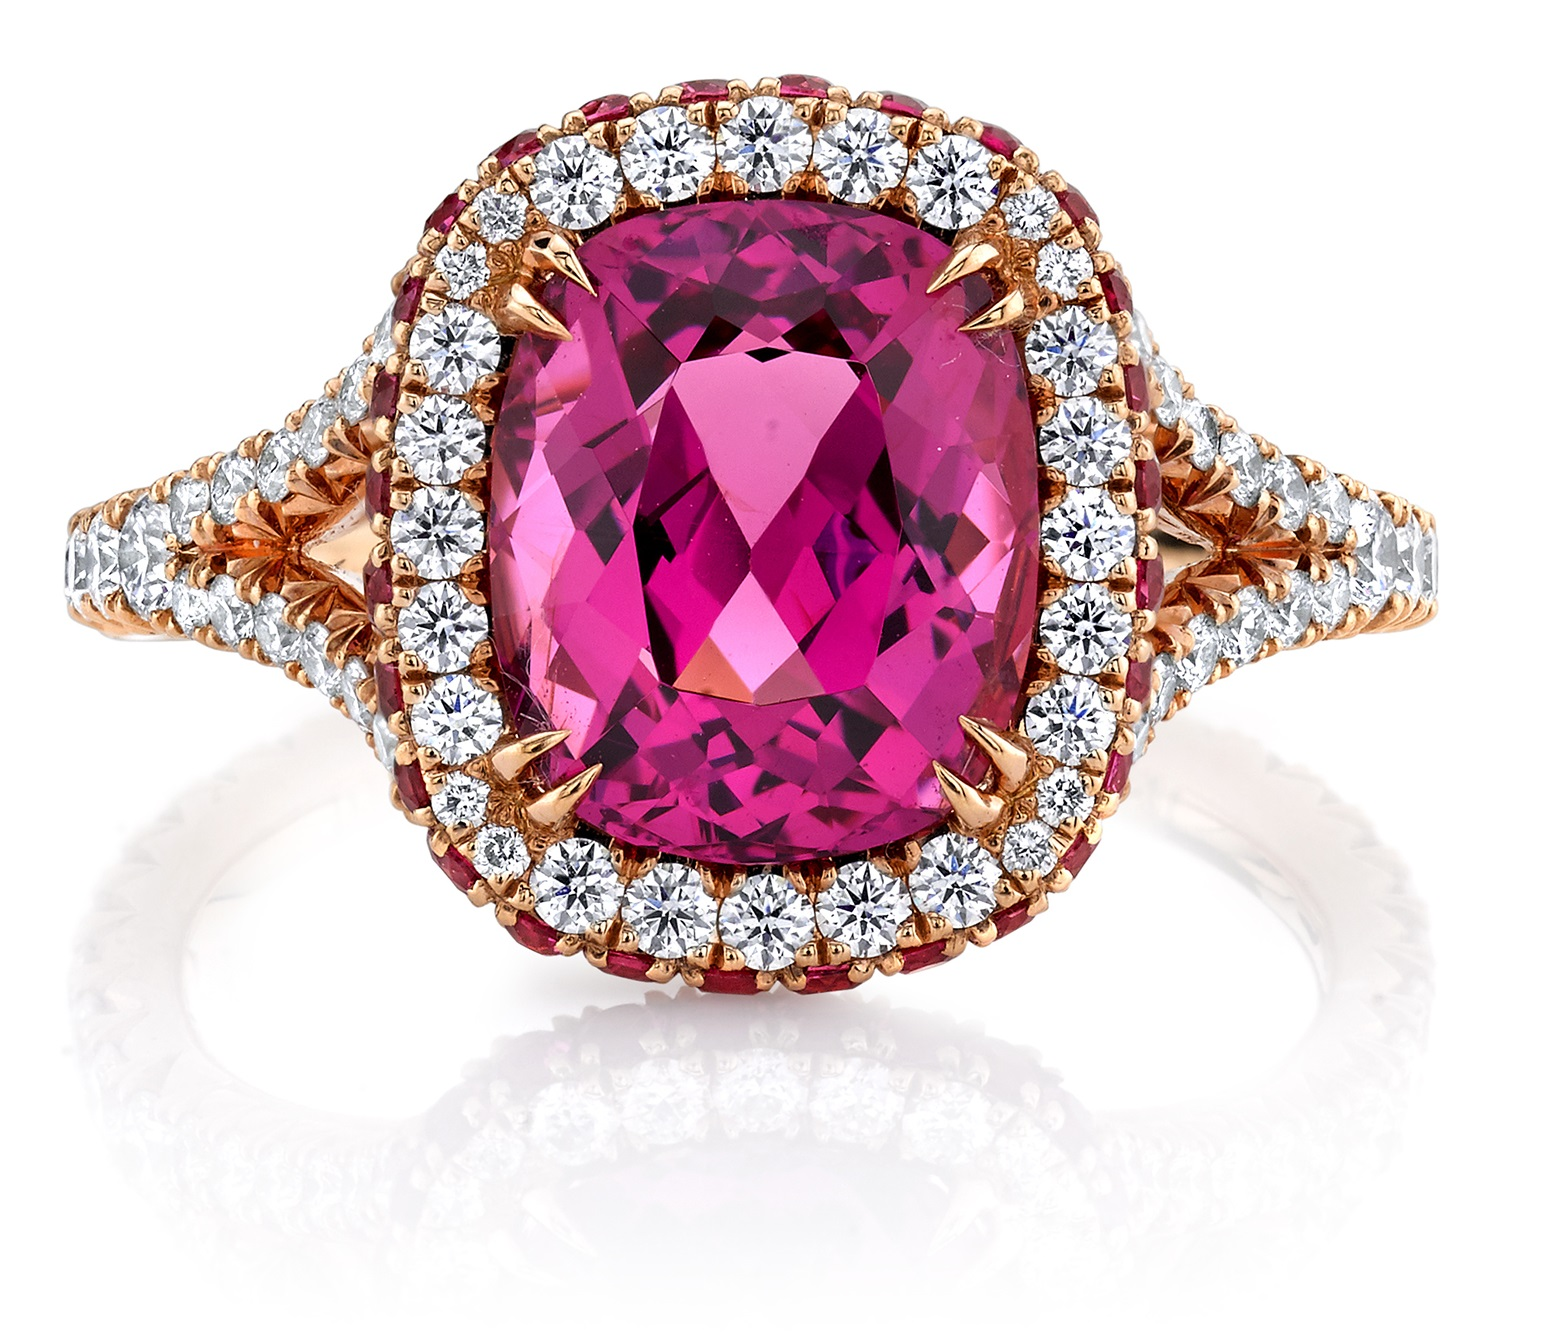 American Gem Society Blog | Consumer Protection Since 1934.